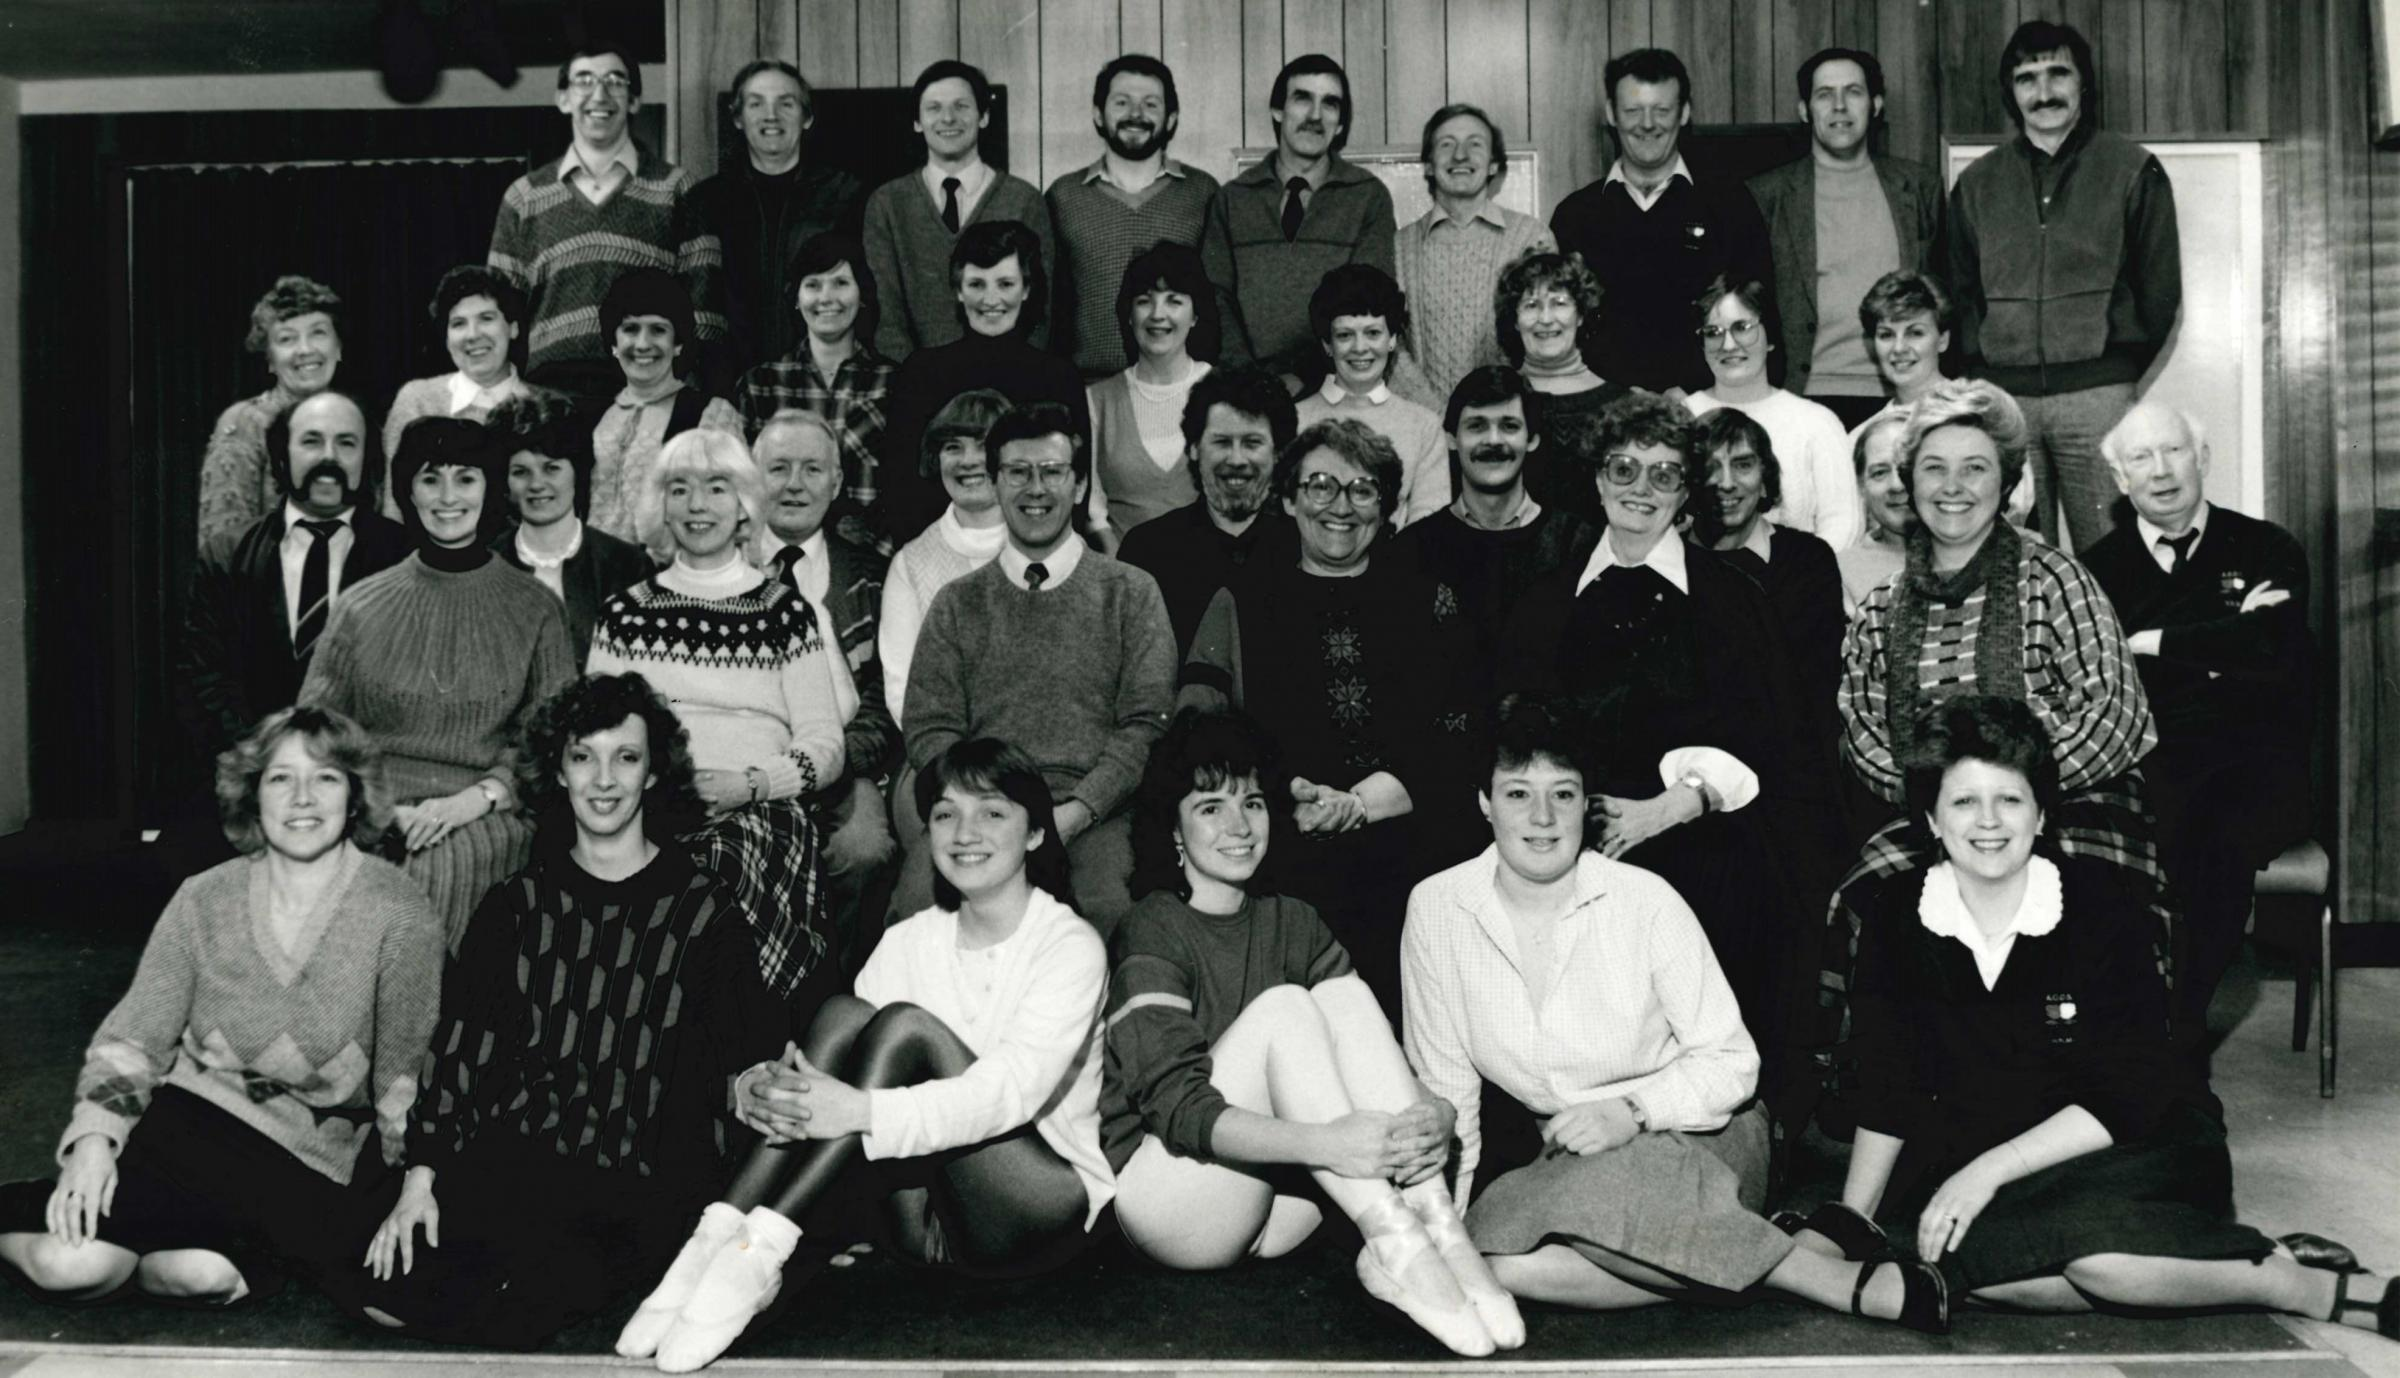 Horwich RMI Operatic Society cast of Pink Champagne being staged at Horwich Leisure Centre in March 1986